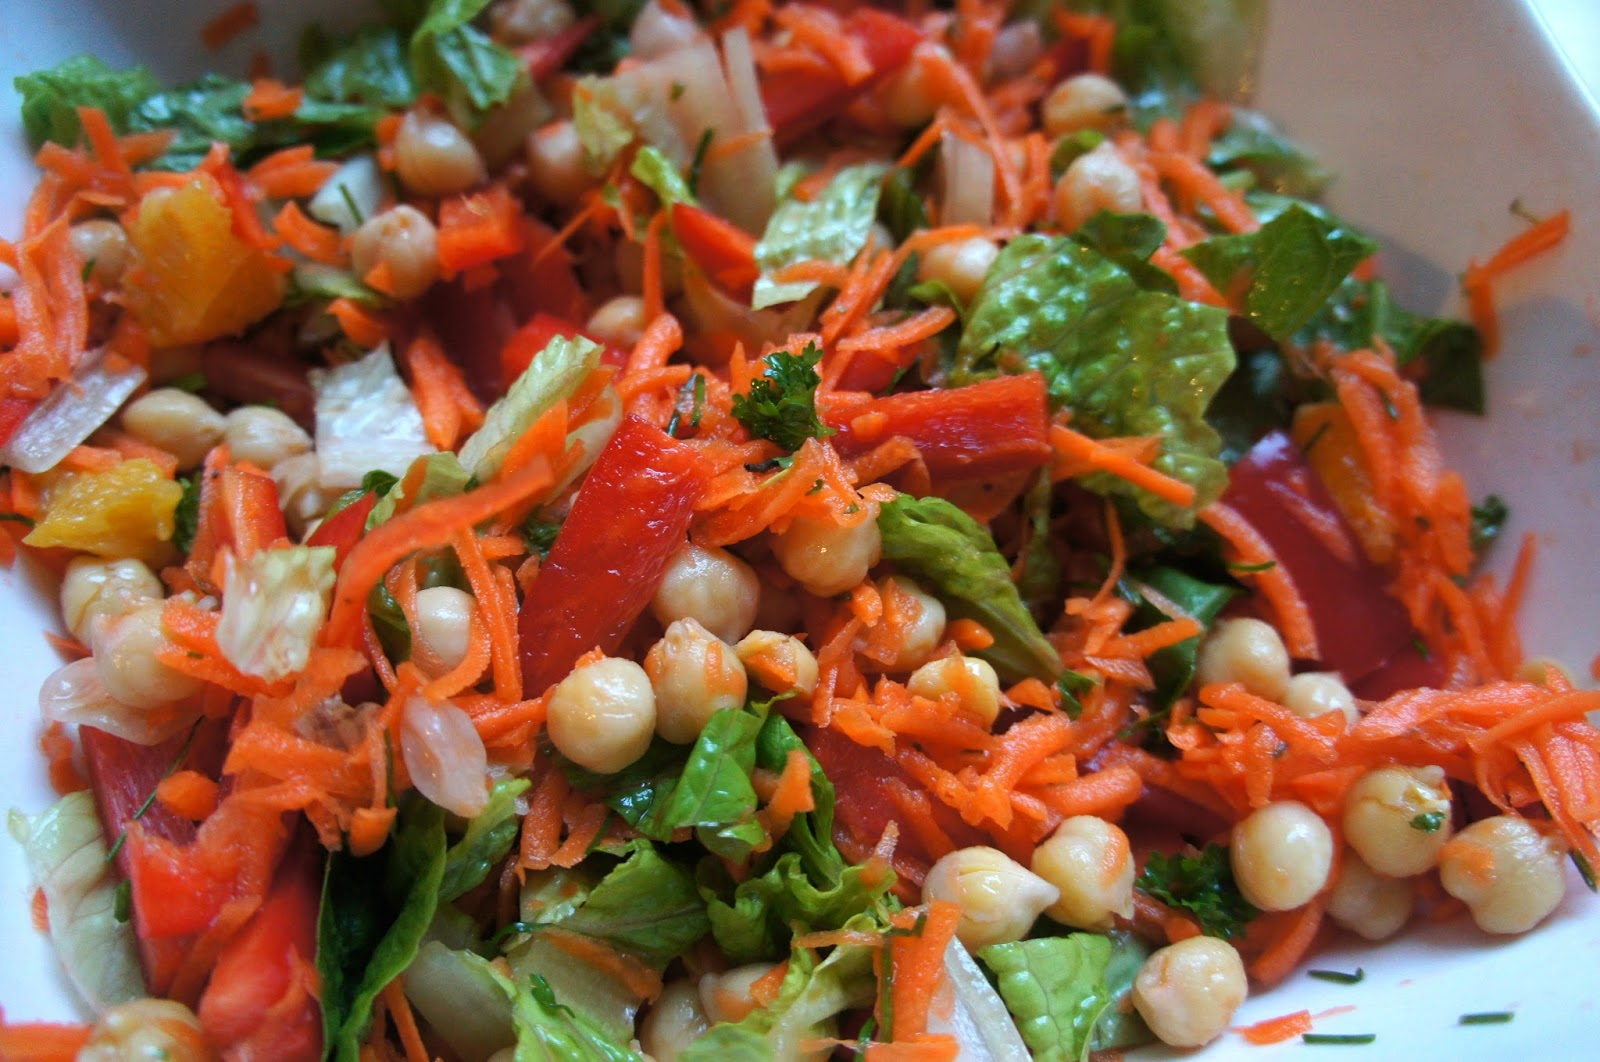 addition to Vitamin C, this salad provides protein from the chickpeas ...